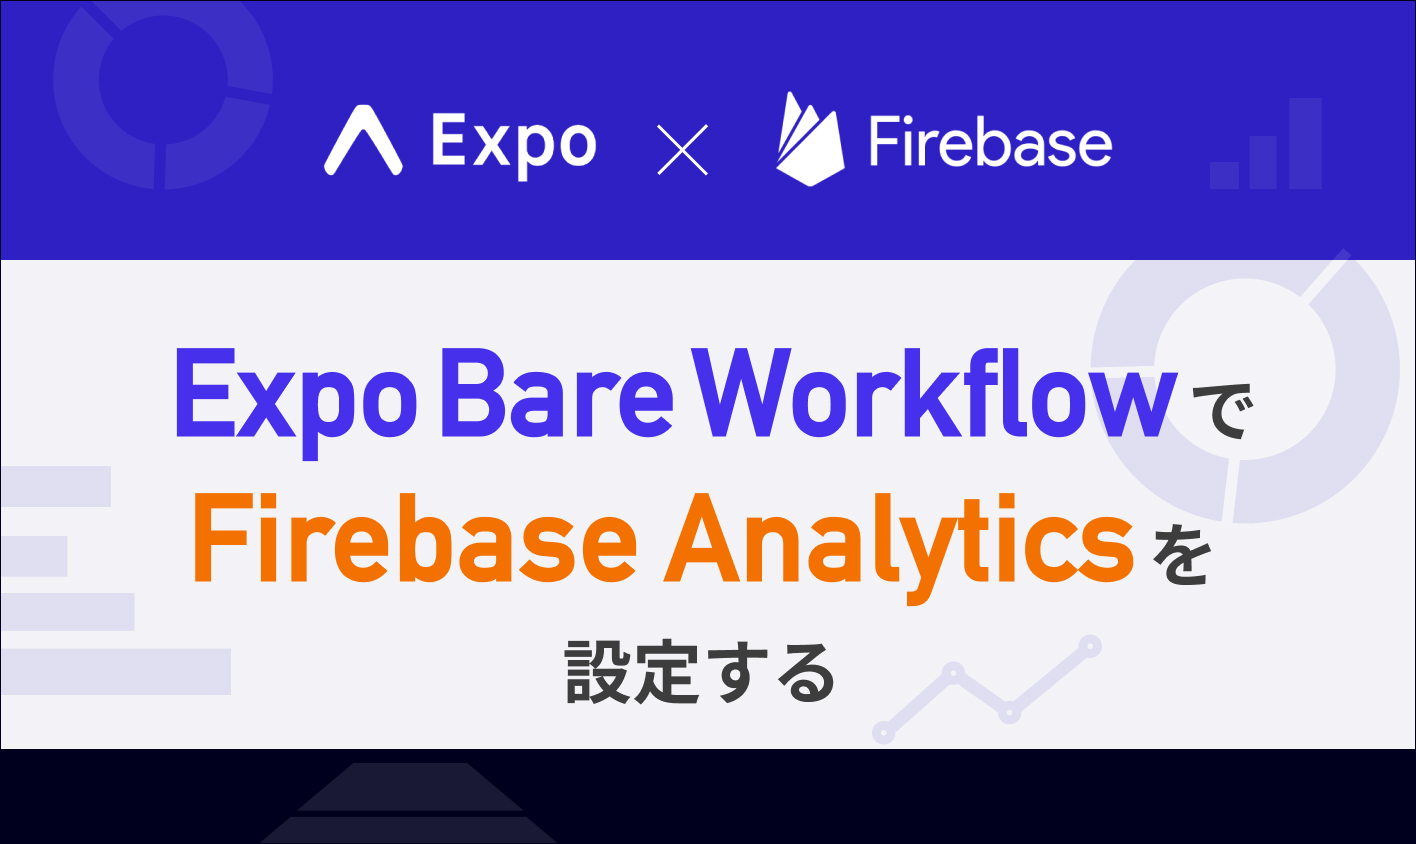 Expo Bare Workflow で Firebase Analytics を設定する